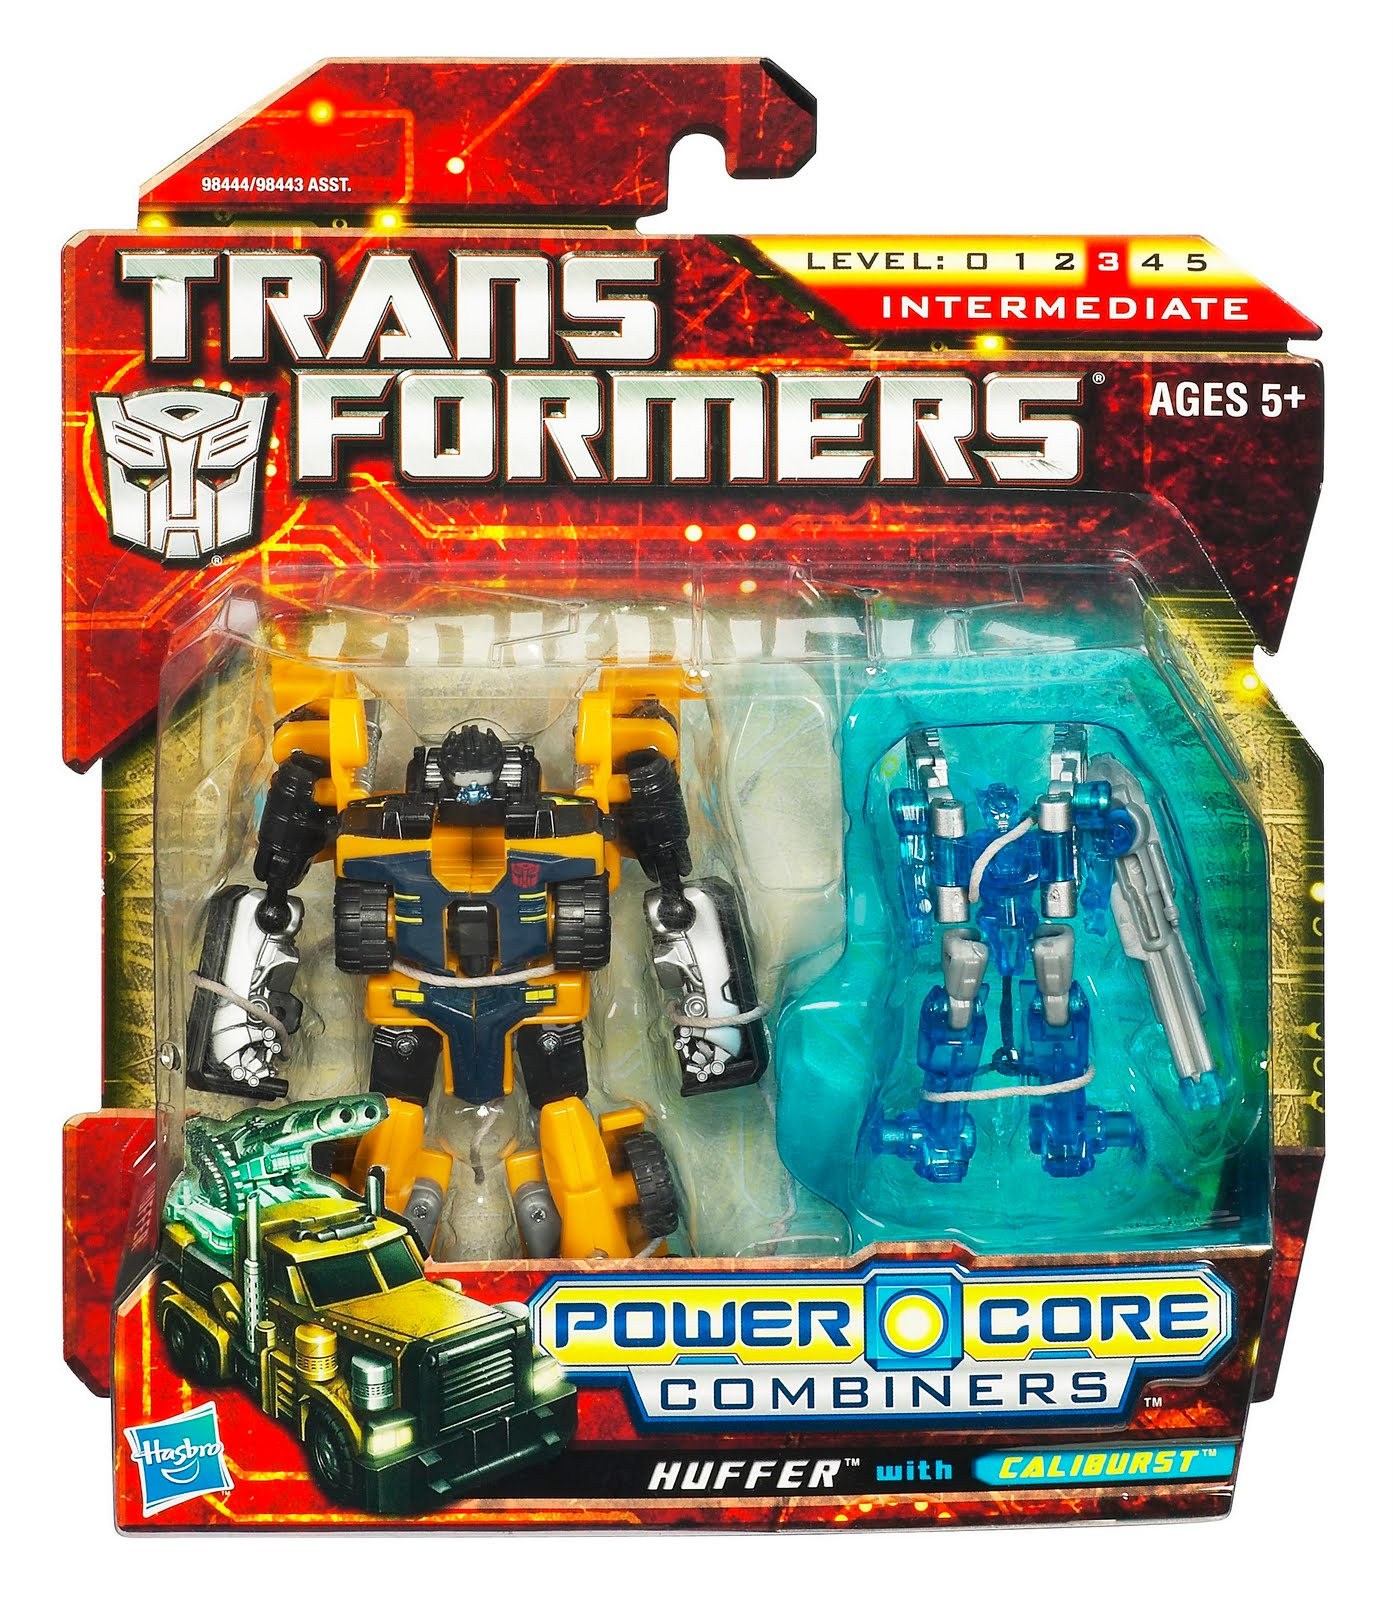 Boy Toys Packaging : Quot deal ightfully frugal holiday gift guide hasbro boys